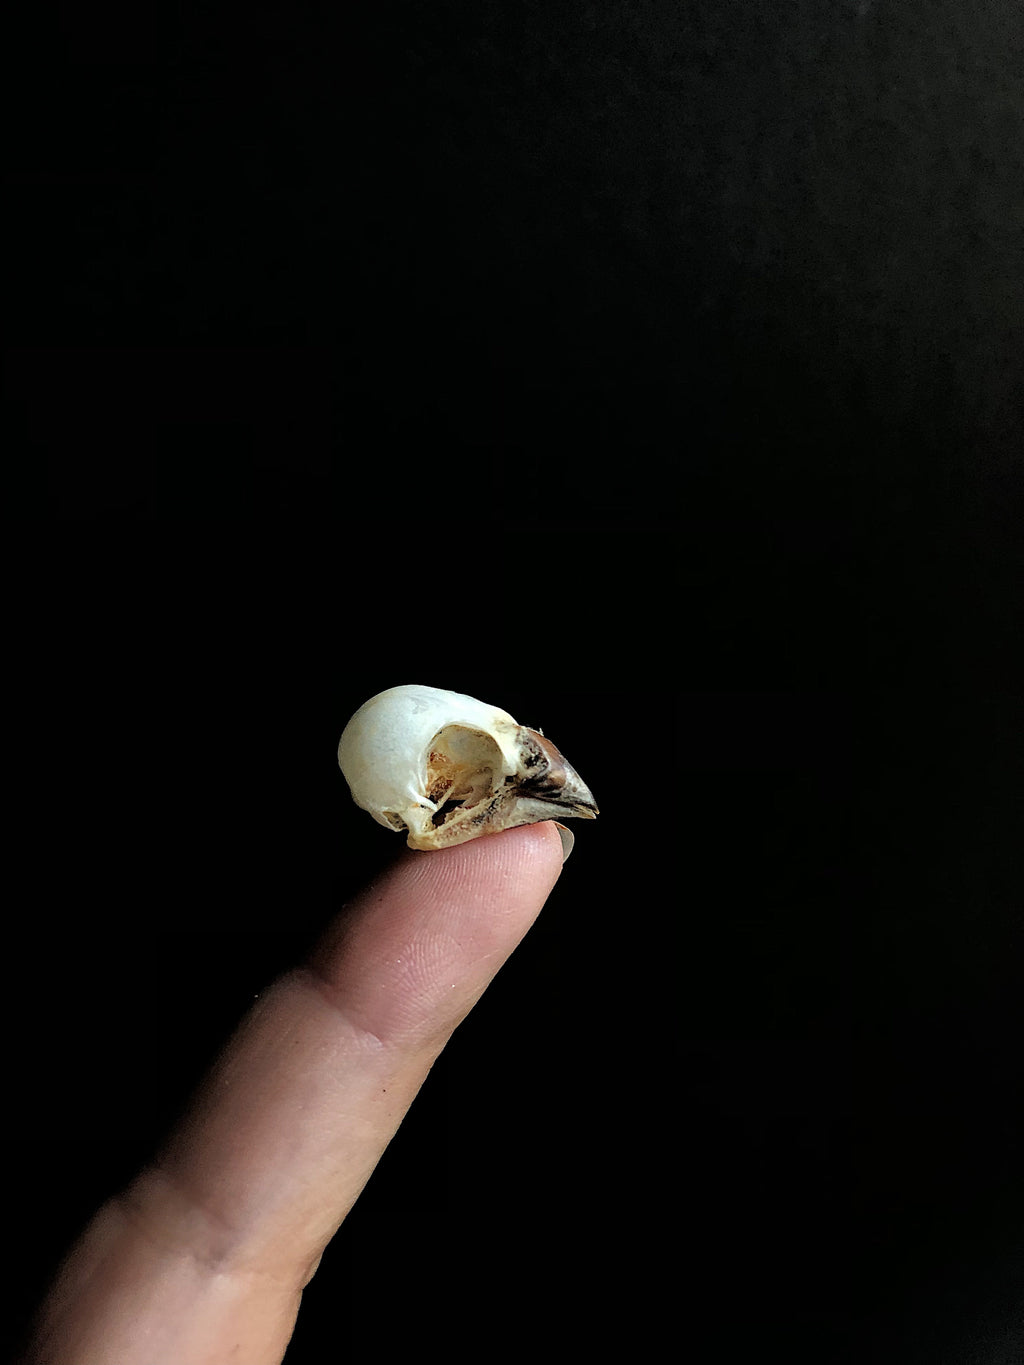 Eurasian Tree Sparrow Bird Skull, SBG128